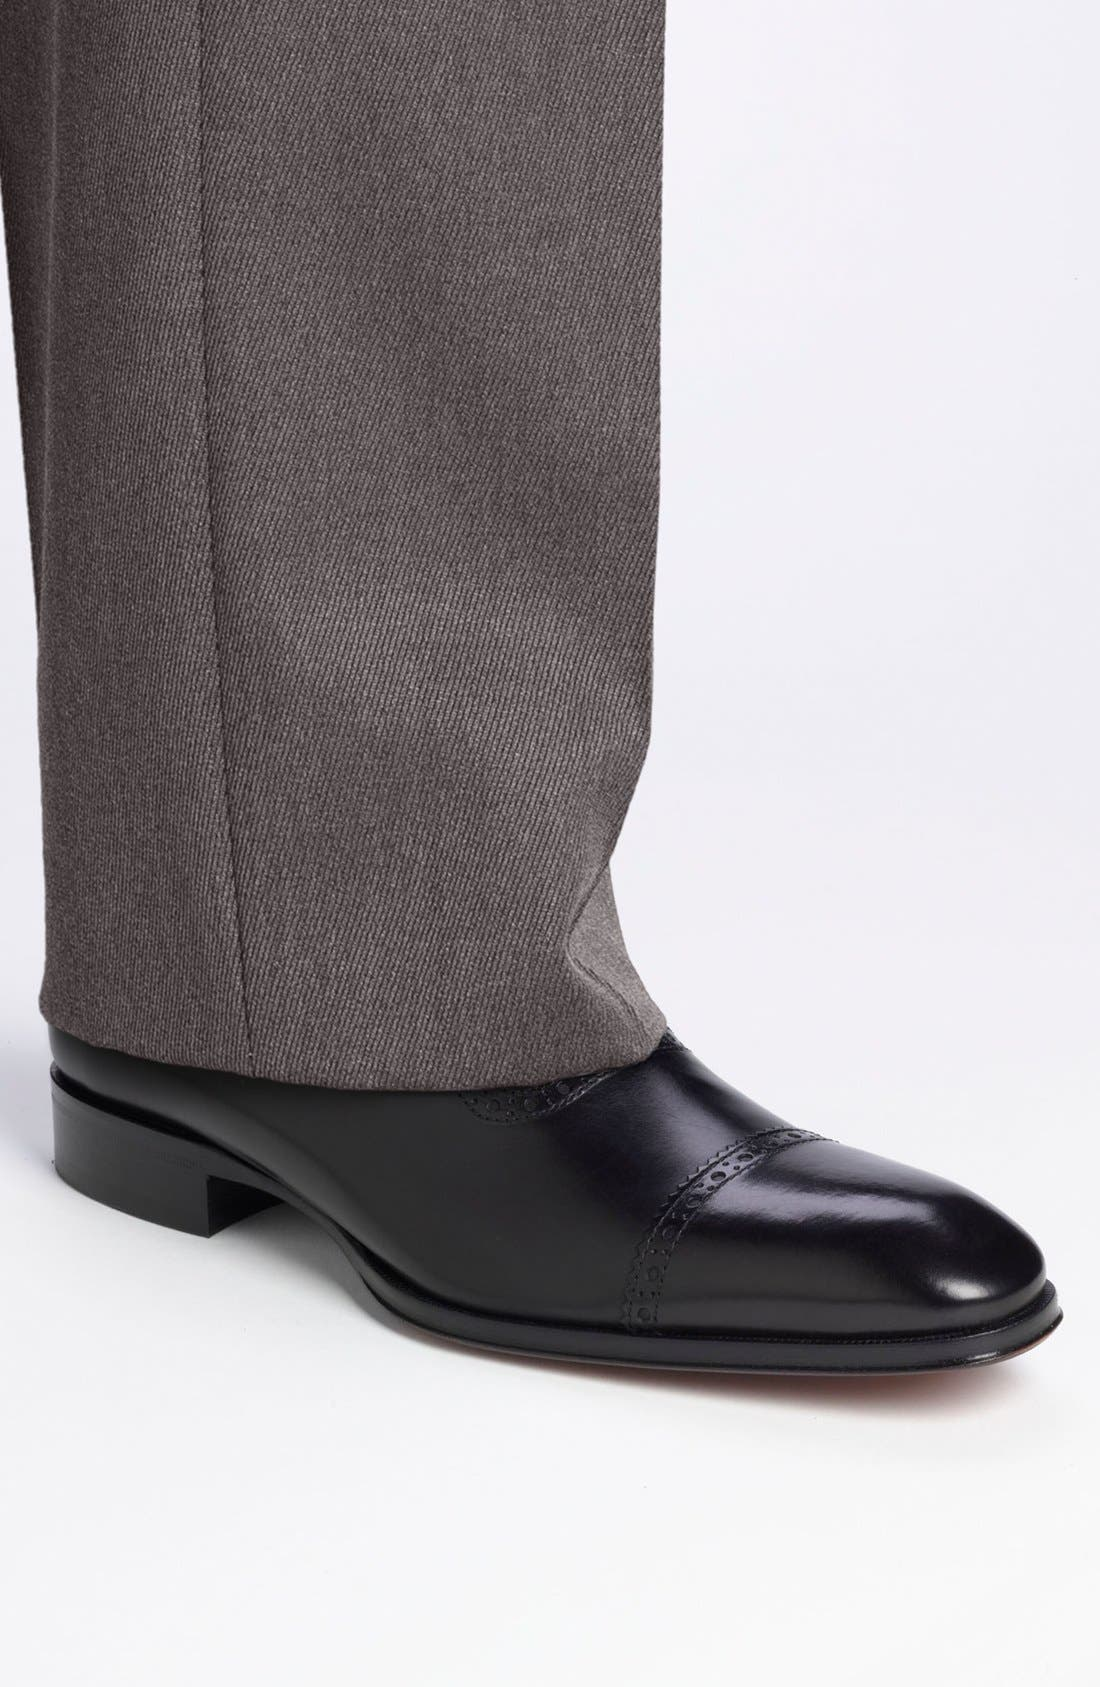 TO BOOT NEW YORK,                             'Warwick' Cap Toe Oxford,                             Alternate thumbnail 5, color,                             001